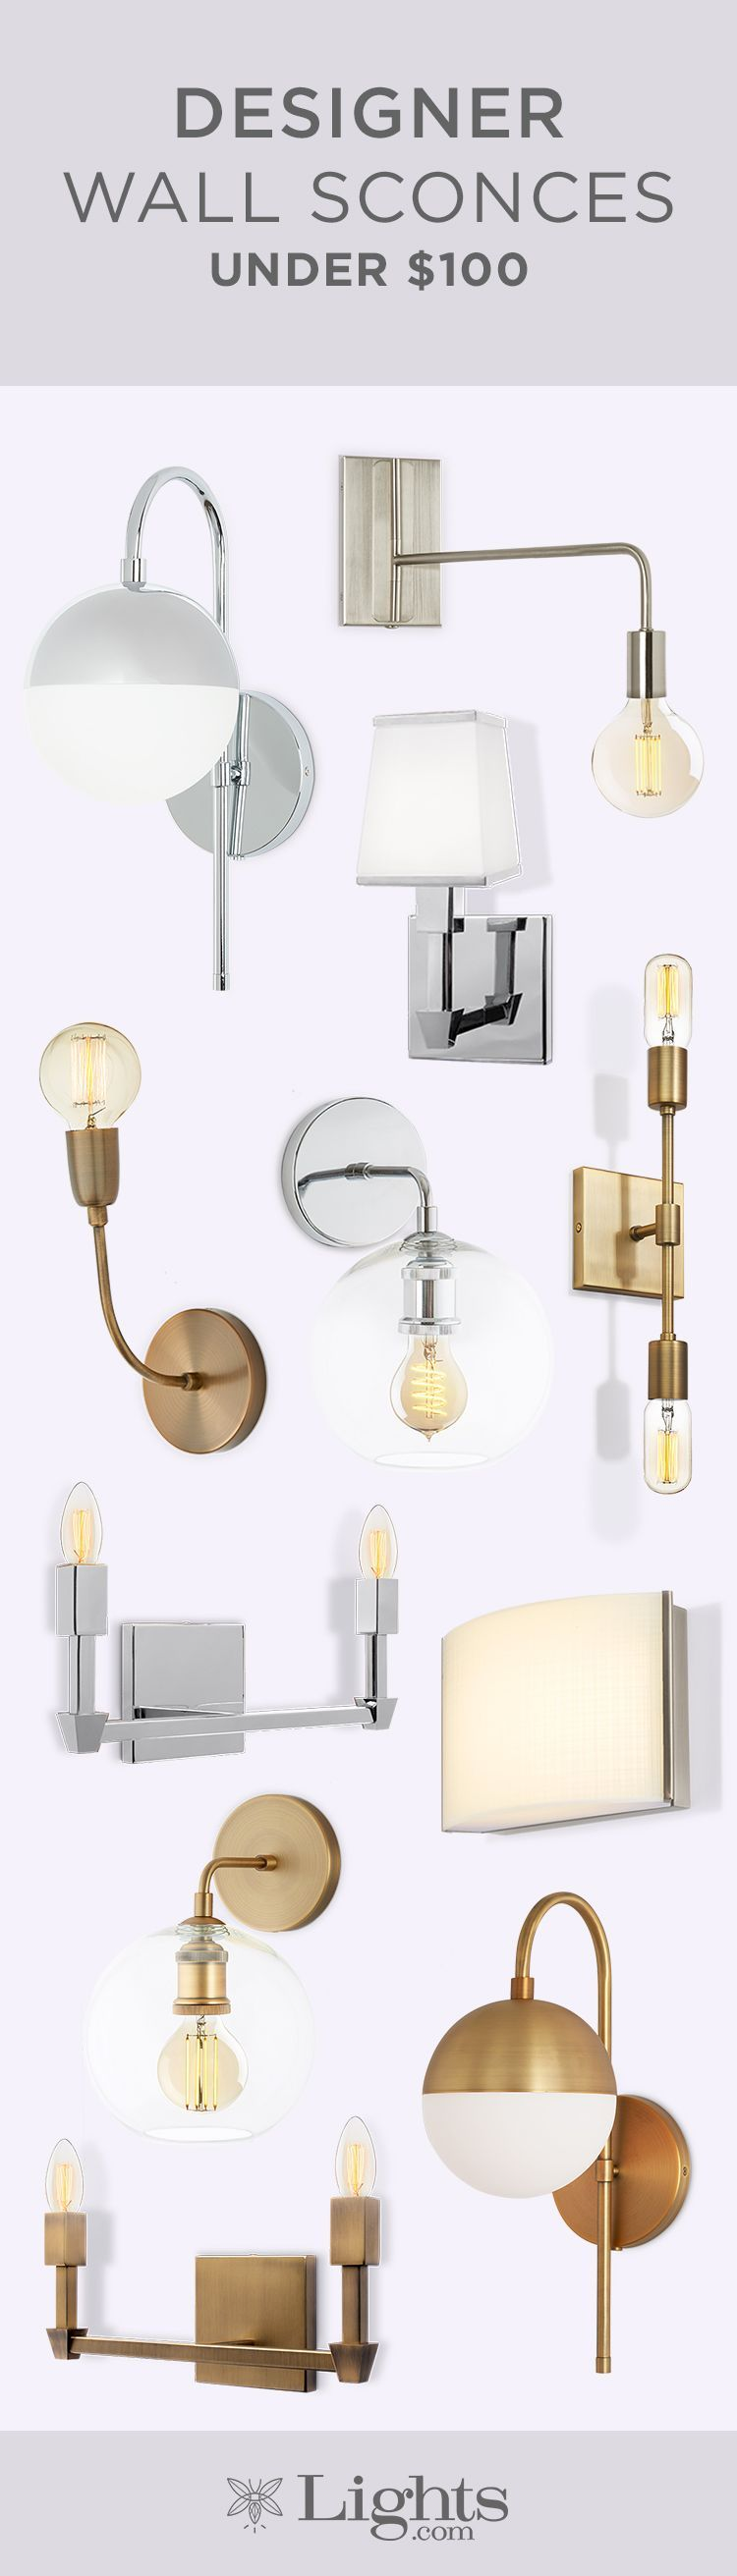 Our collection of wall sconces feature classic shapes and minimal our collection of wall sconces feature classic shapes and minimal styles that fit seamlessly into a mozeypictures Gallery